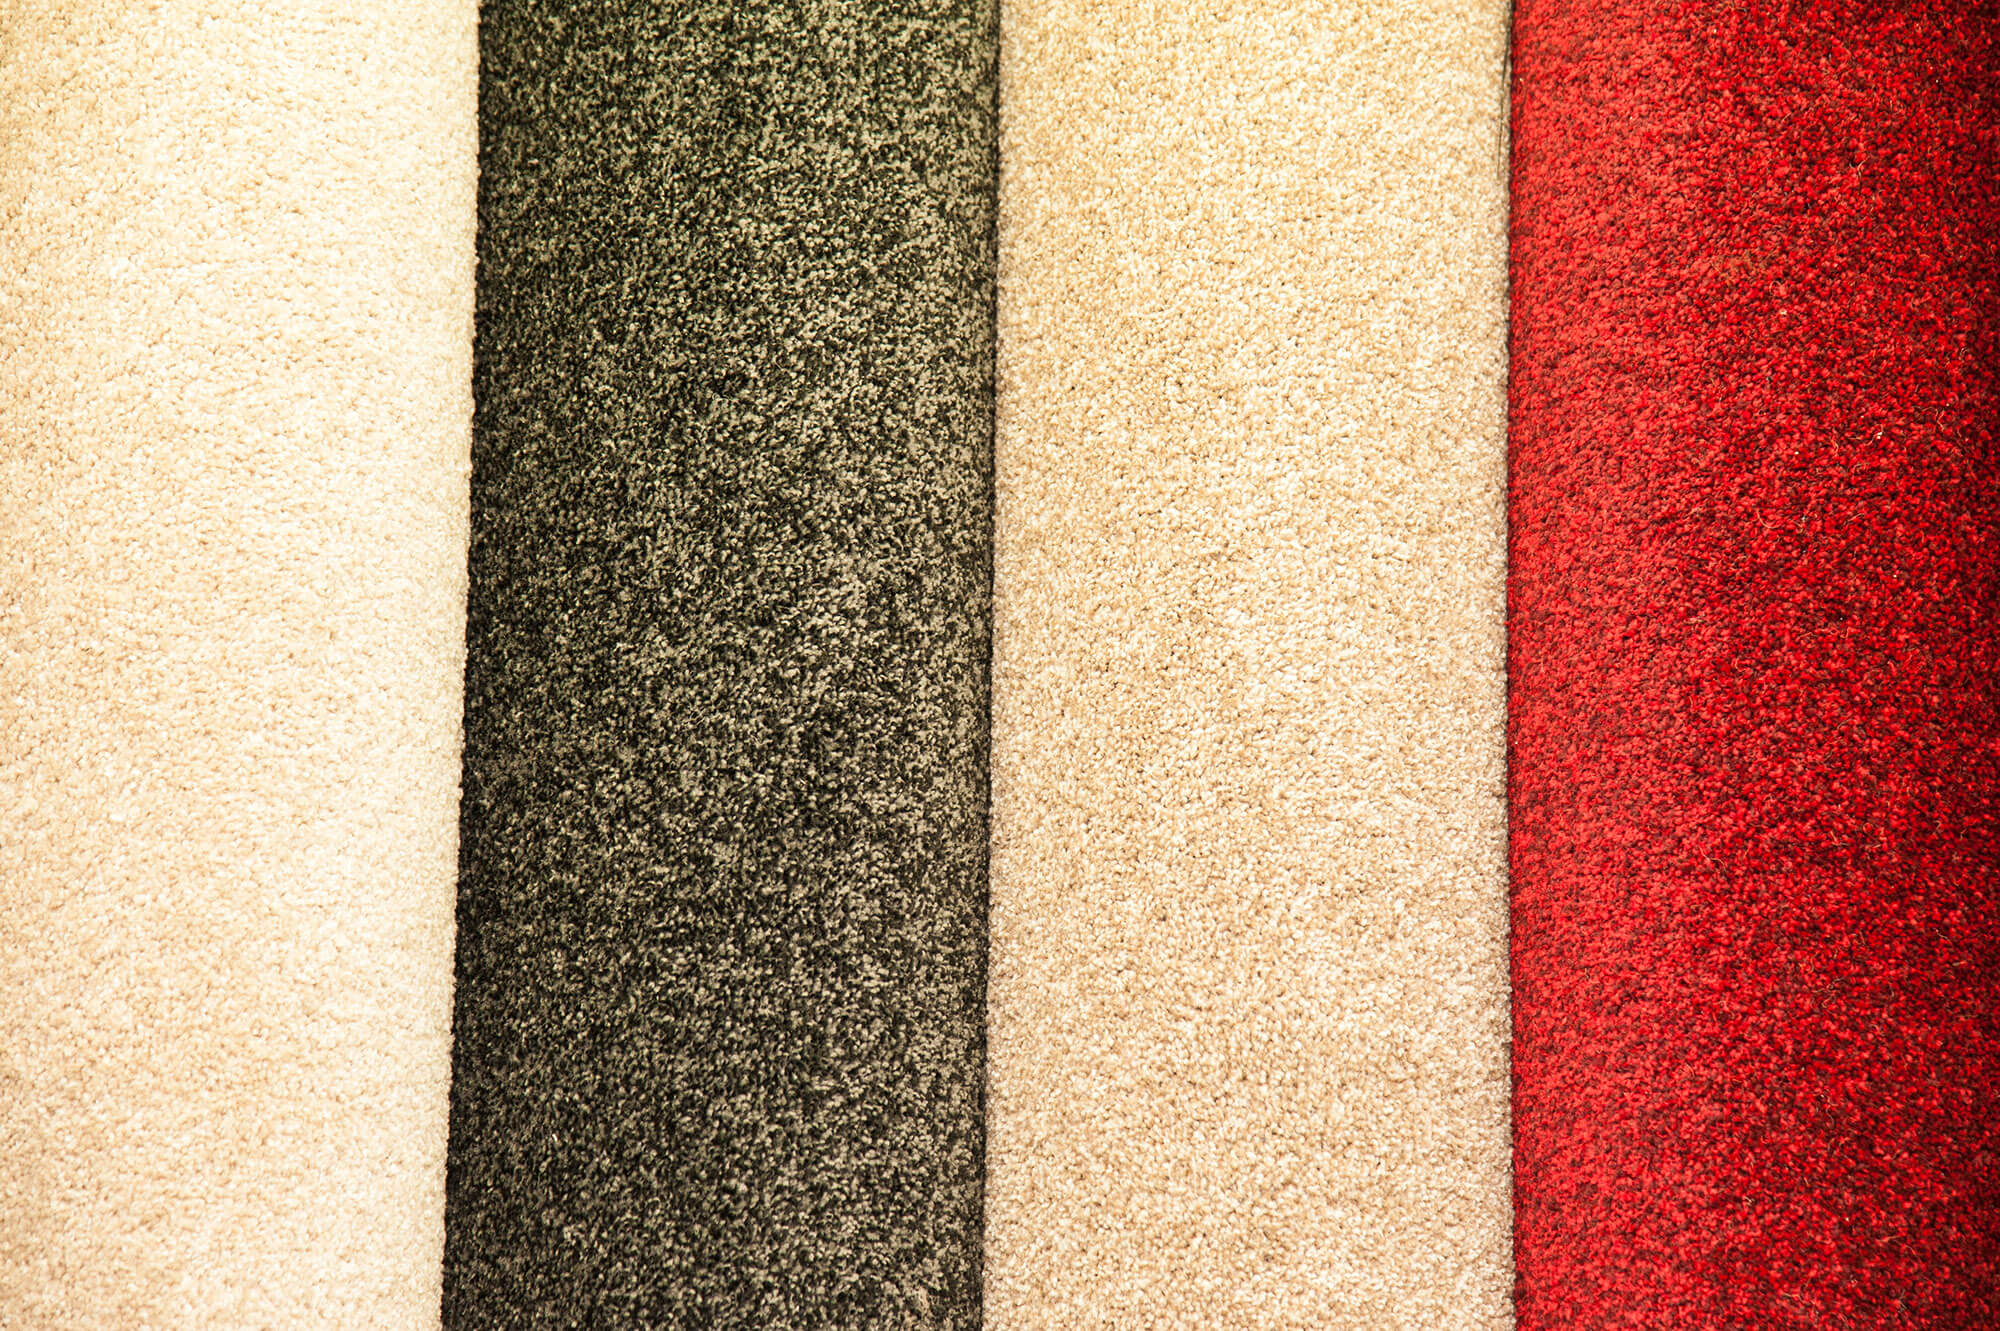 Stain resistant carpets Leicester